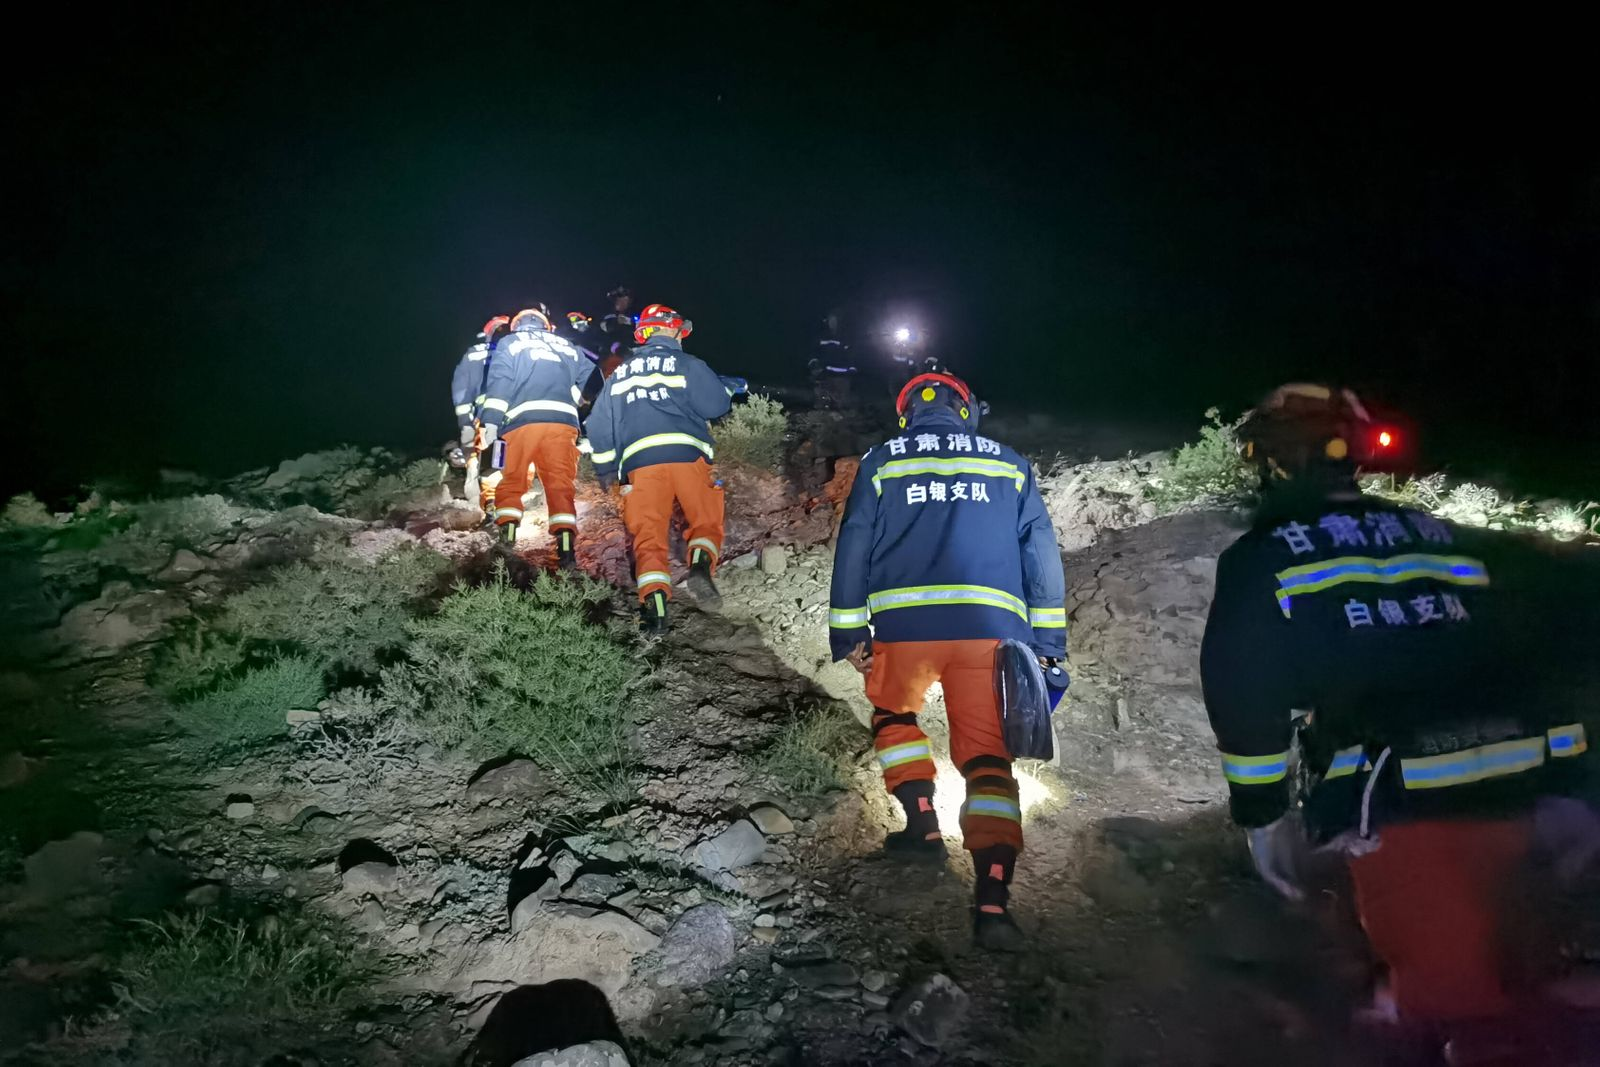 (210523) -- JINGTAI, May 23, 2021 () -- Rescuers search for missing people at the Yellow River Stone Forest tourist sit